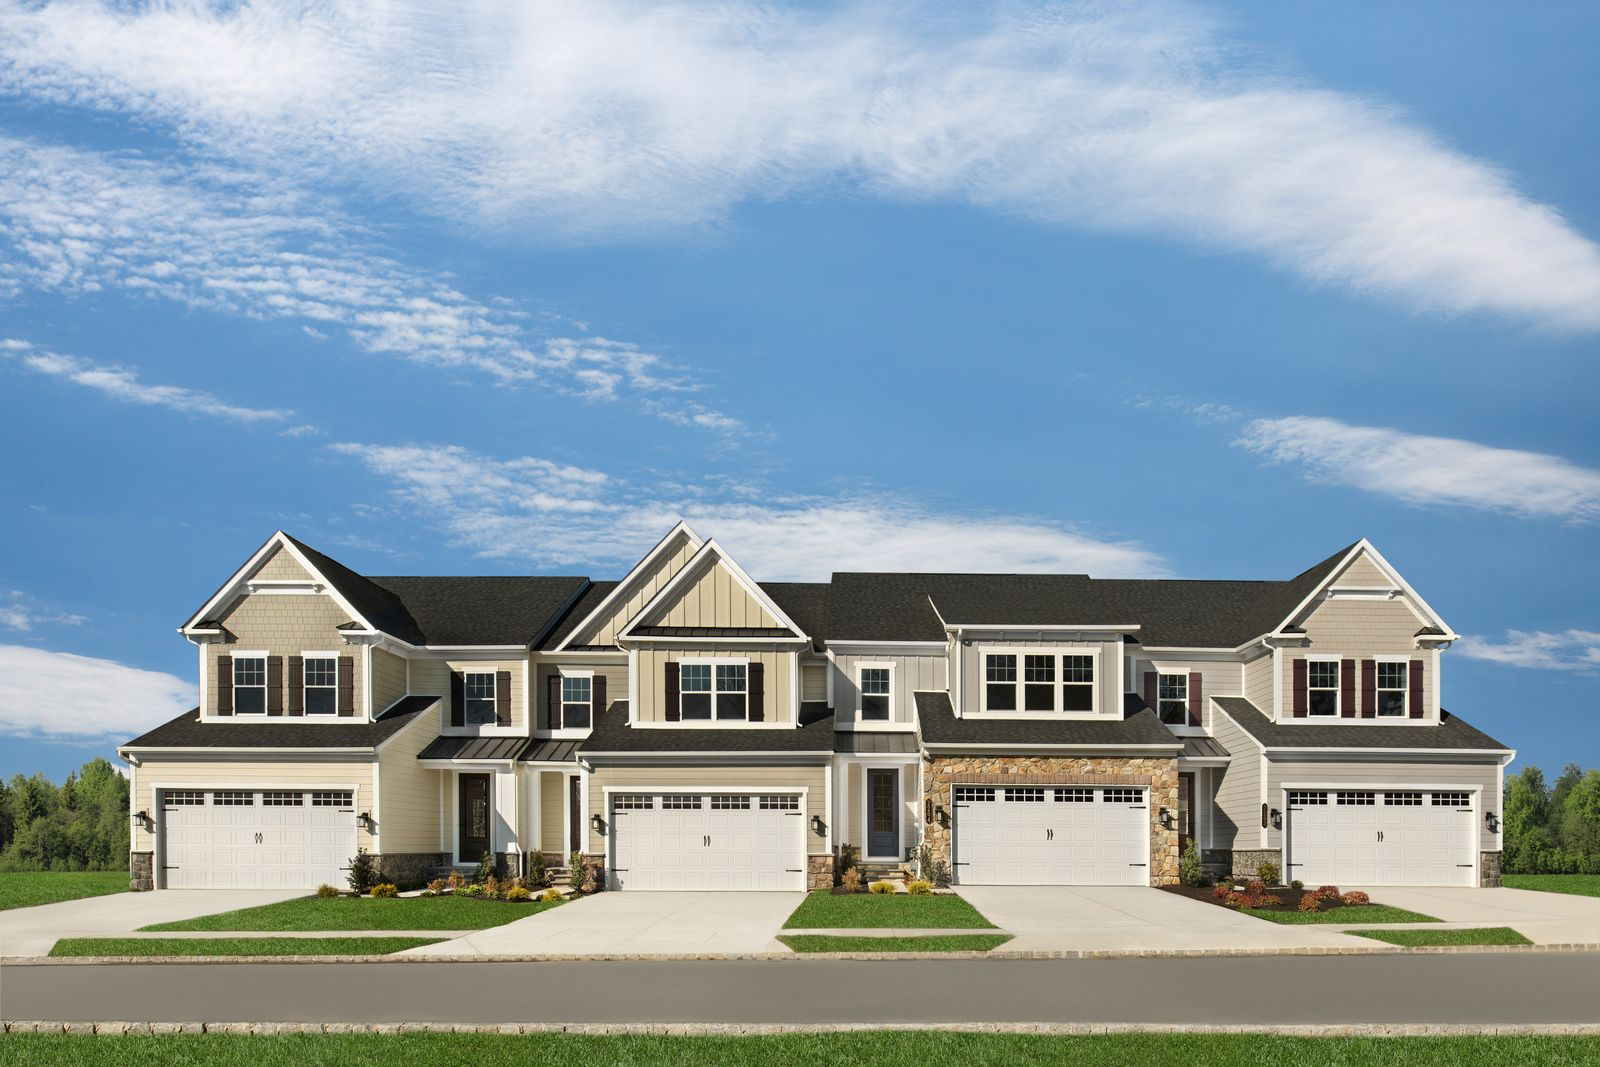 Welcome home to The Landing:The only new luxury townhomes with the best South Hills location and low Washington County taxes. Only 1 minute to McMurray & 2 miles to I-79.Click here to join the VIP List.